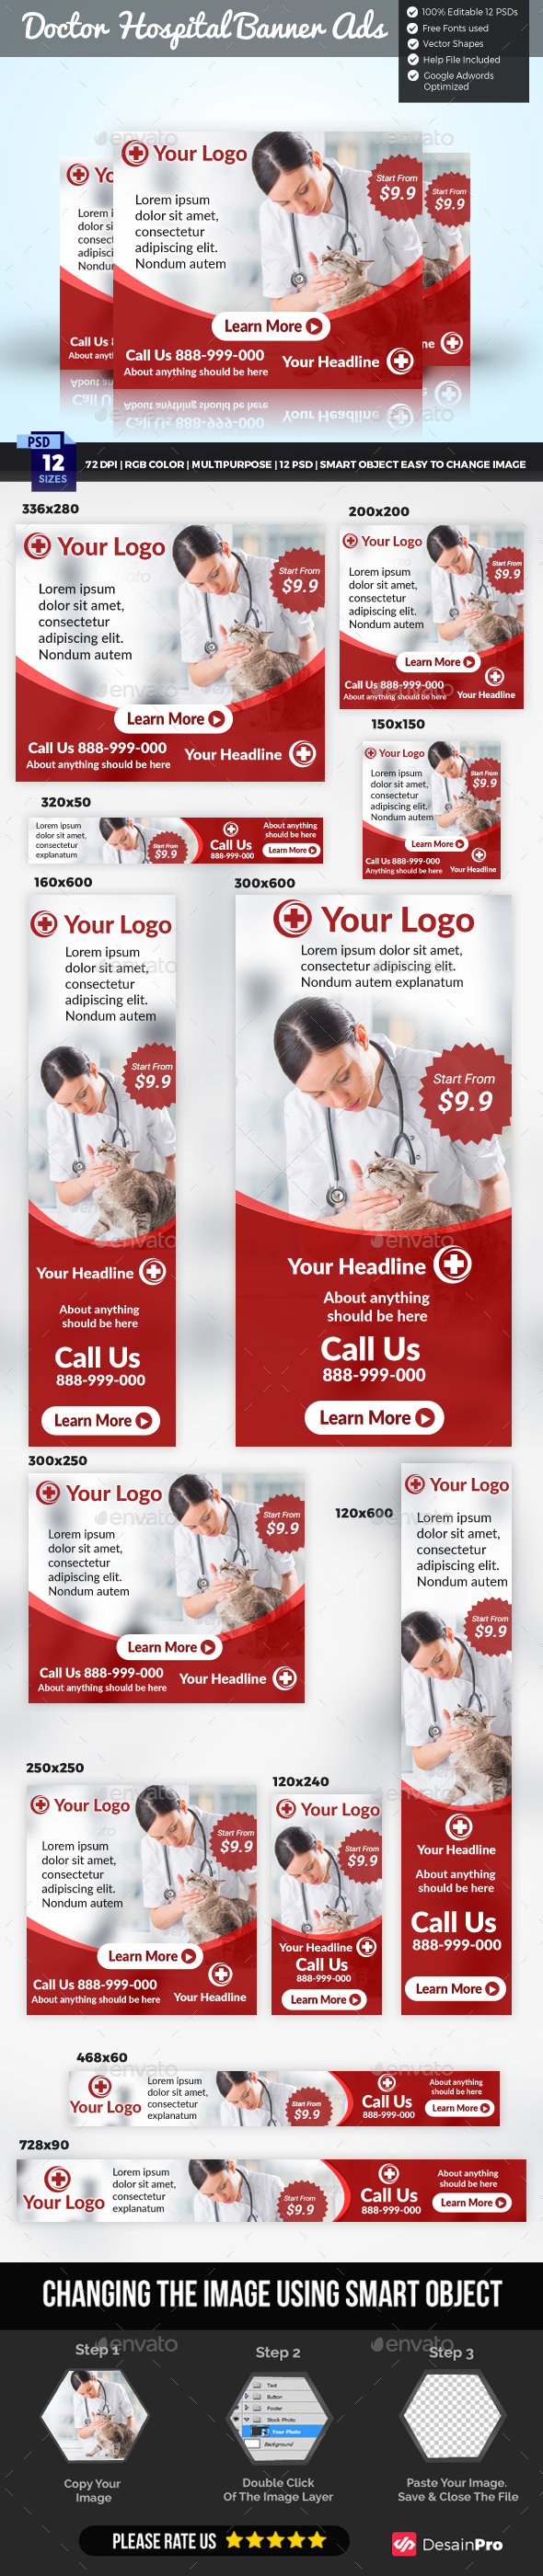 Doctor Medical Banner Template by DesainPro | GraphicRiver